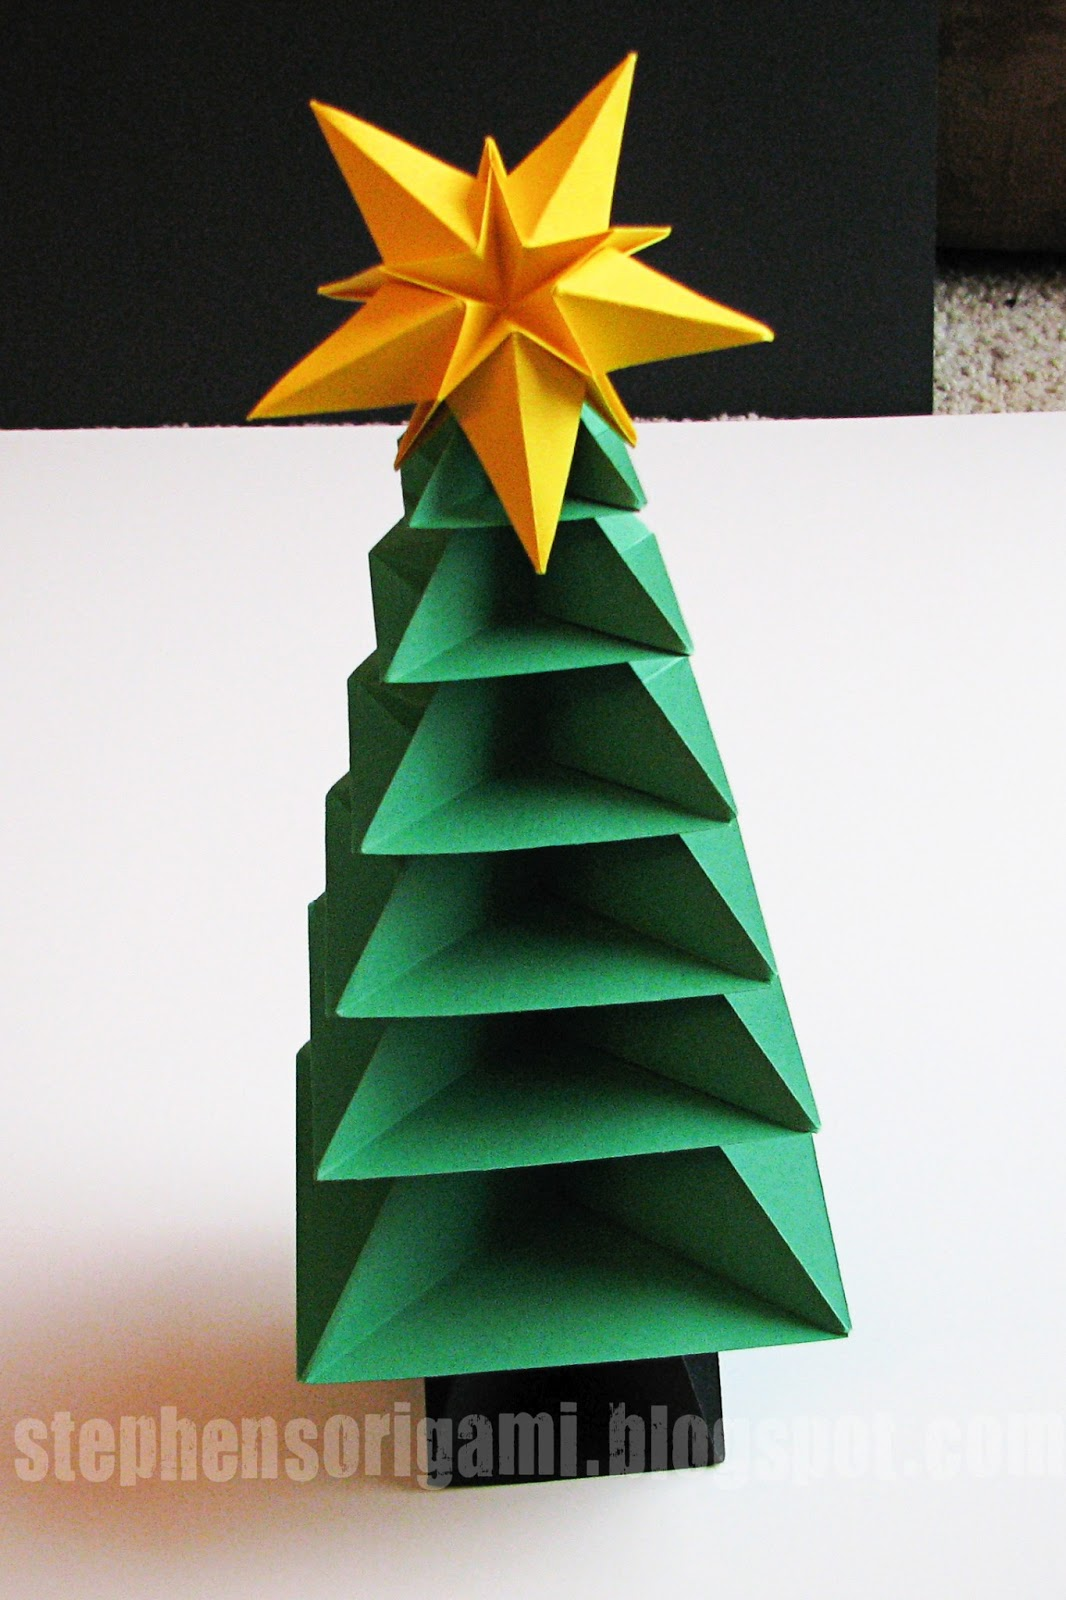 How To Make 3d Christmas Decorations From Paper : Stephen s origami christmas tree tutorial